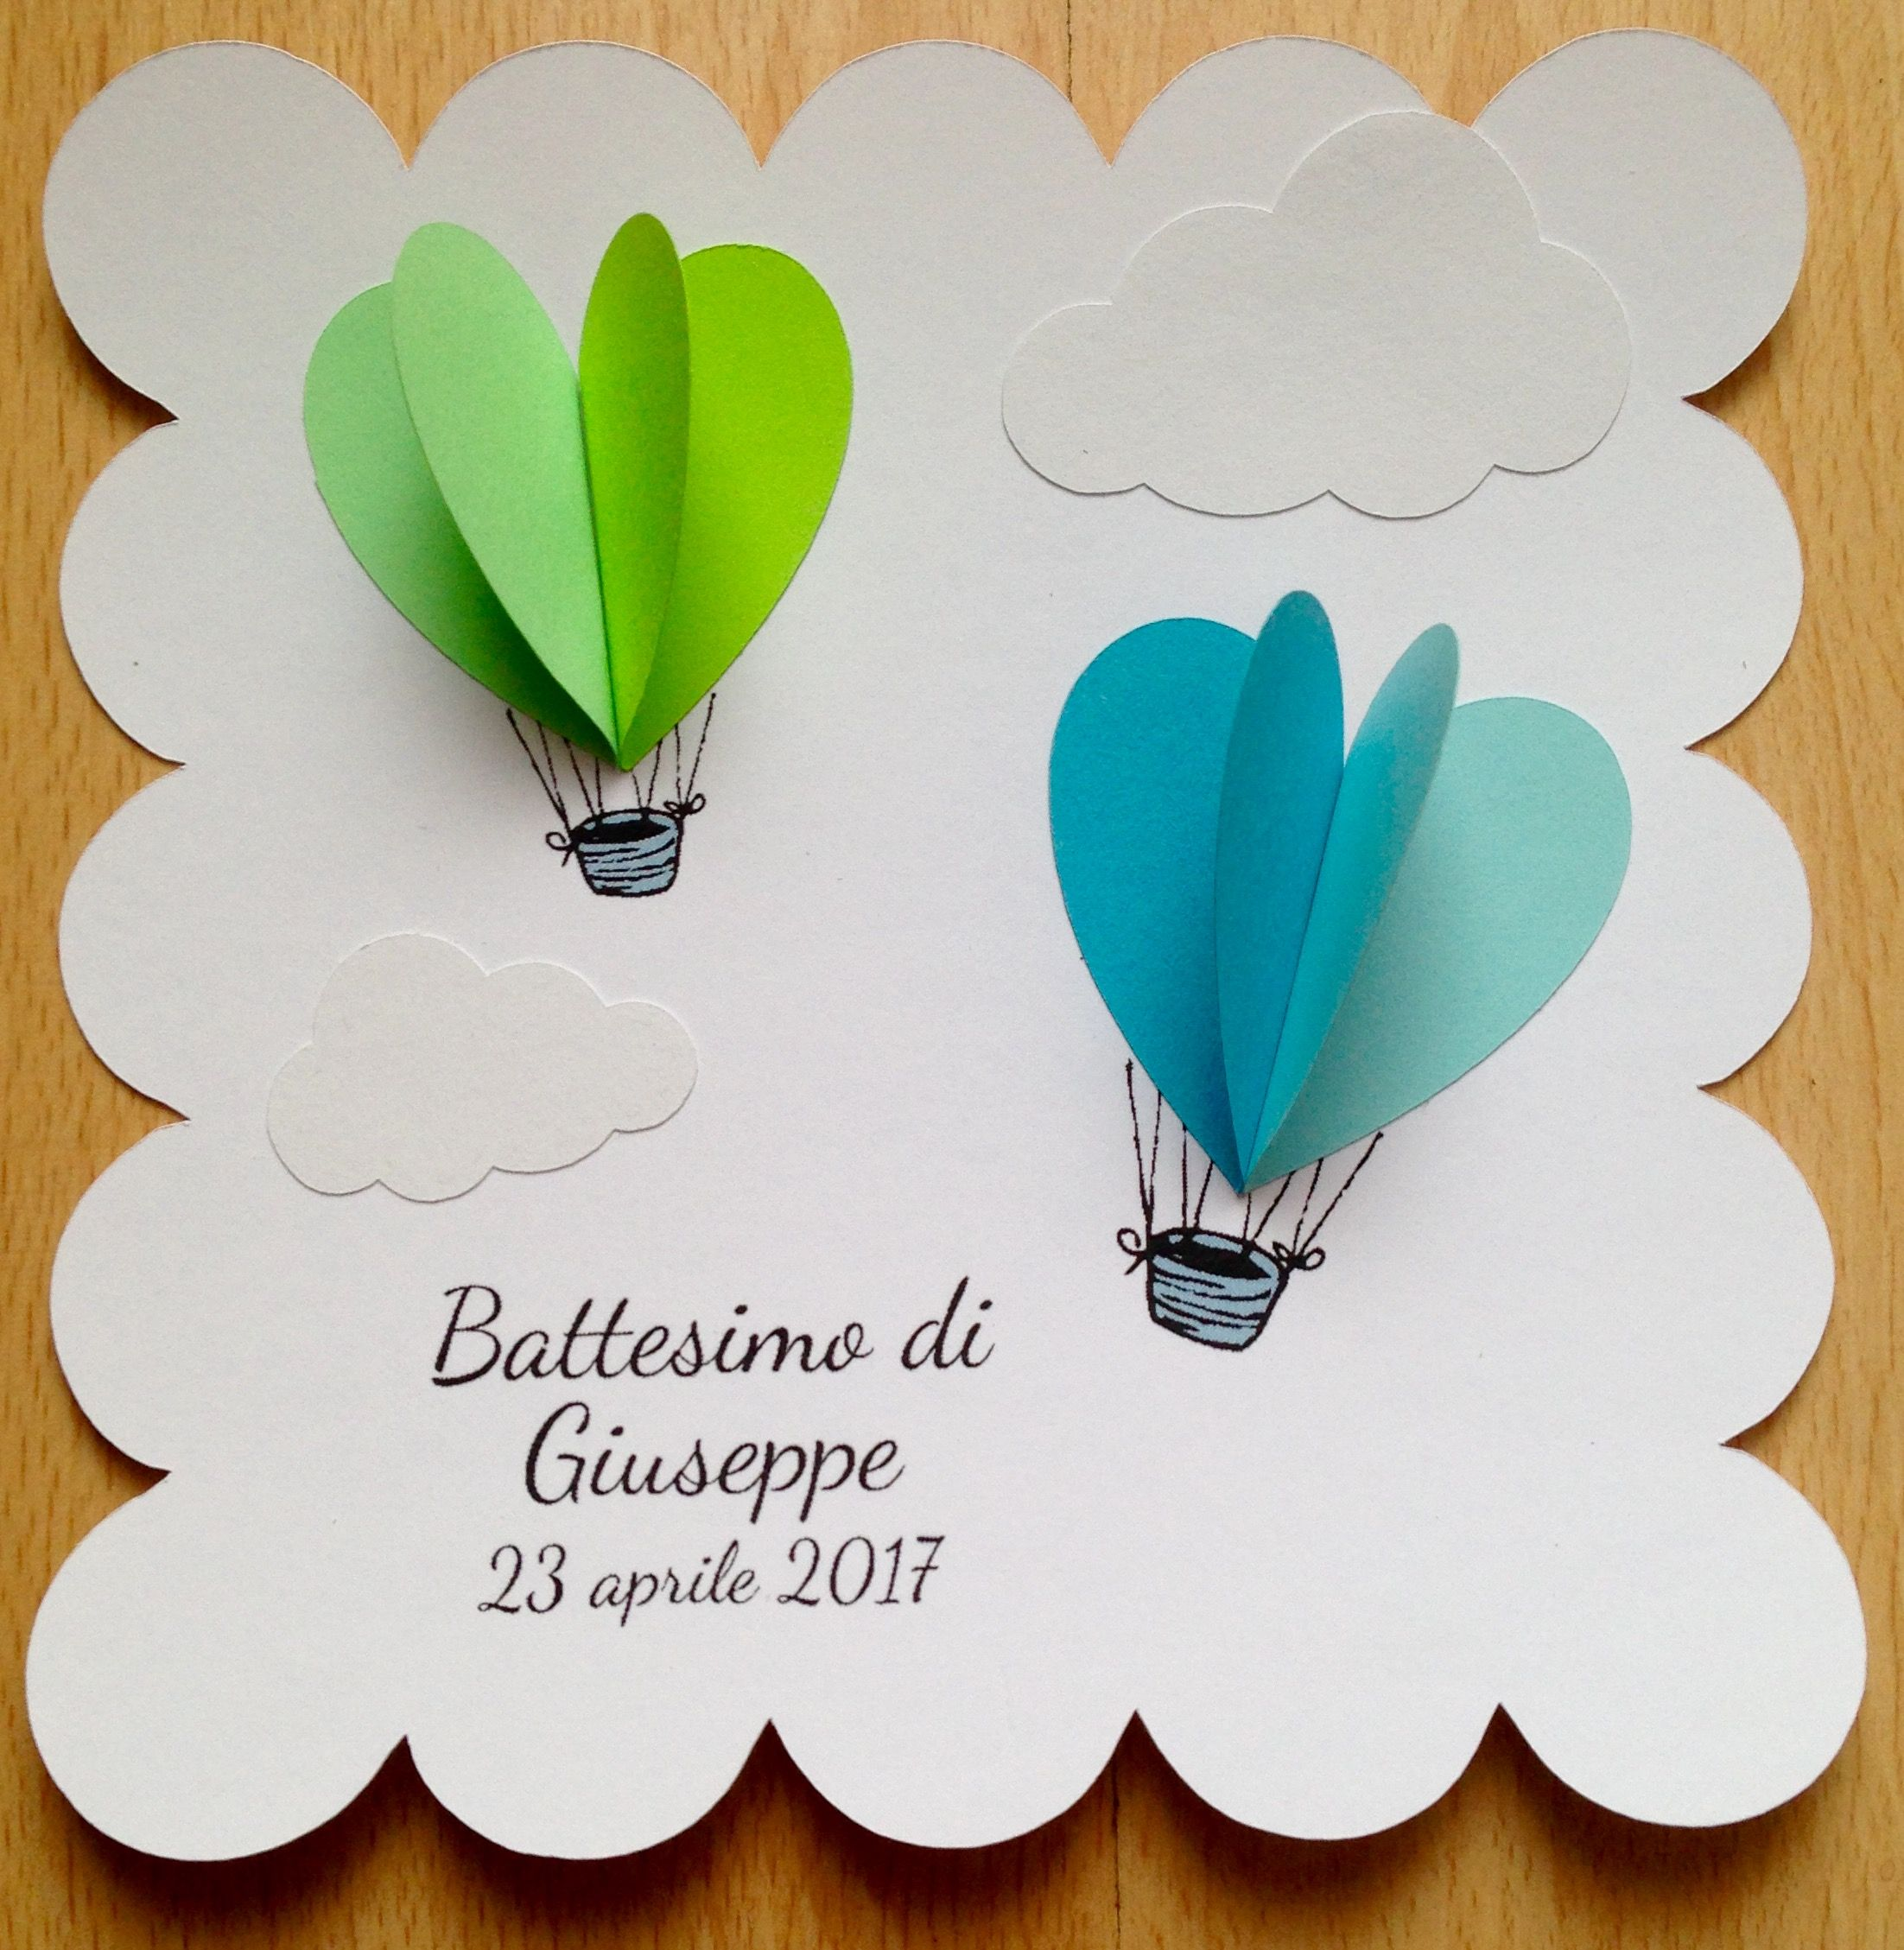 Baptism card, menù, invitation for baby shower with hot air balloons and clouds